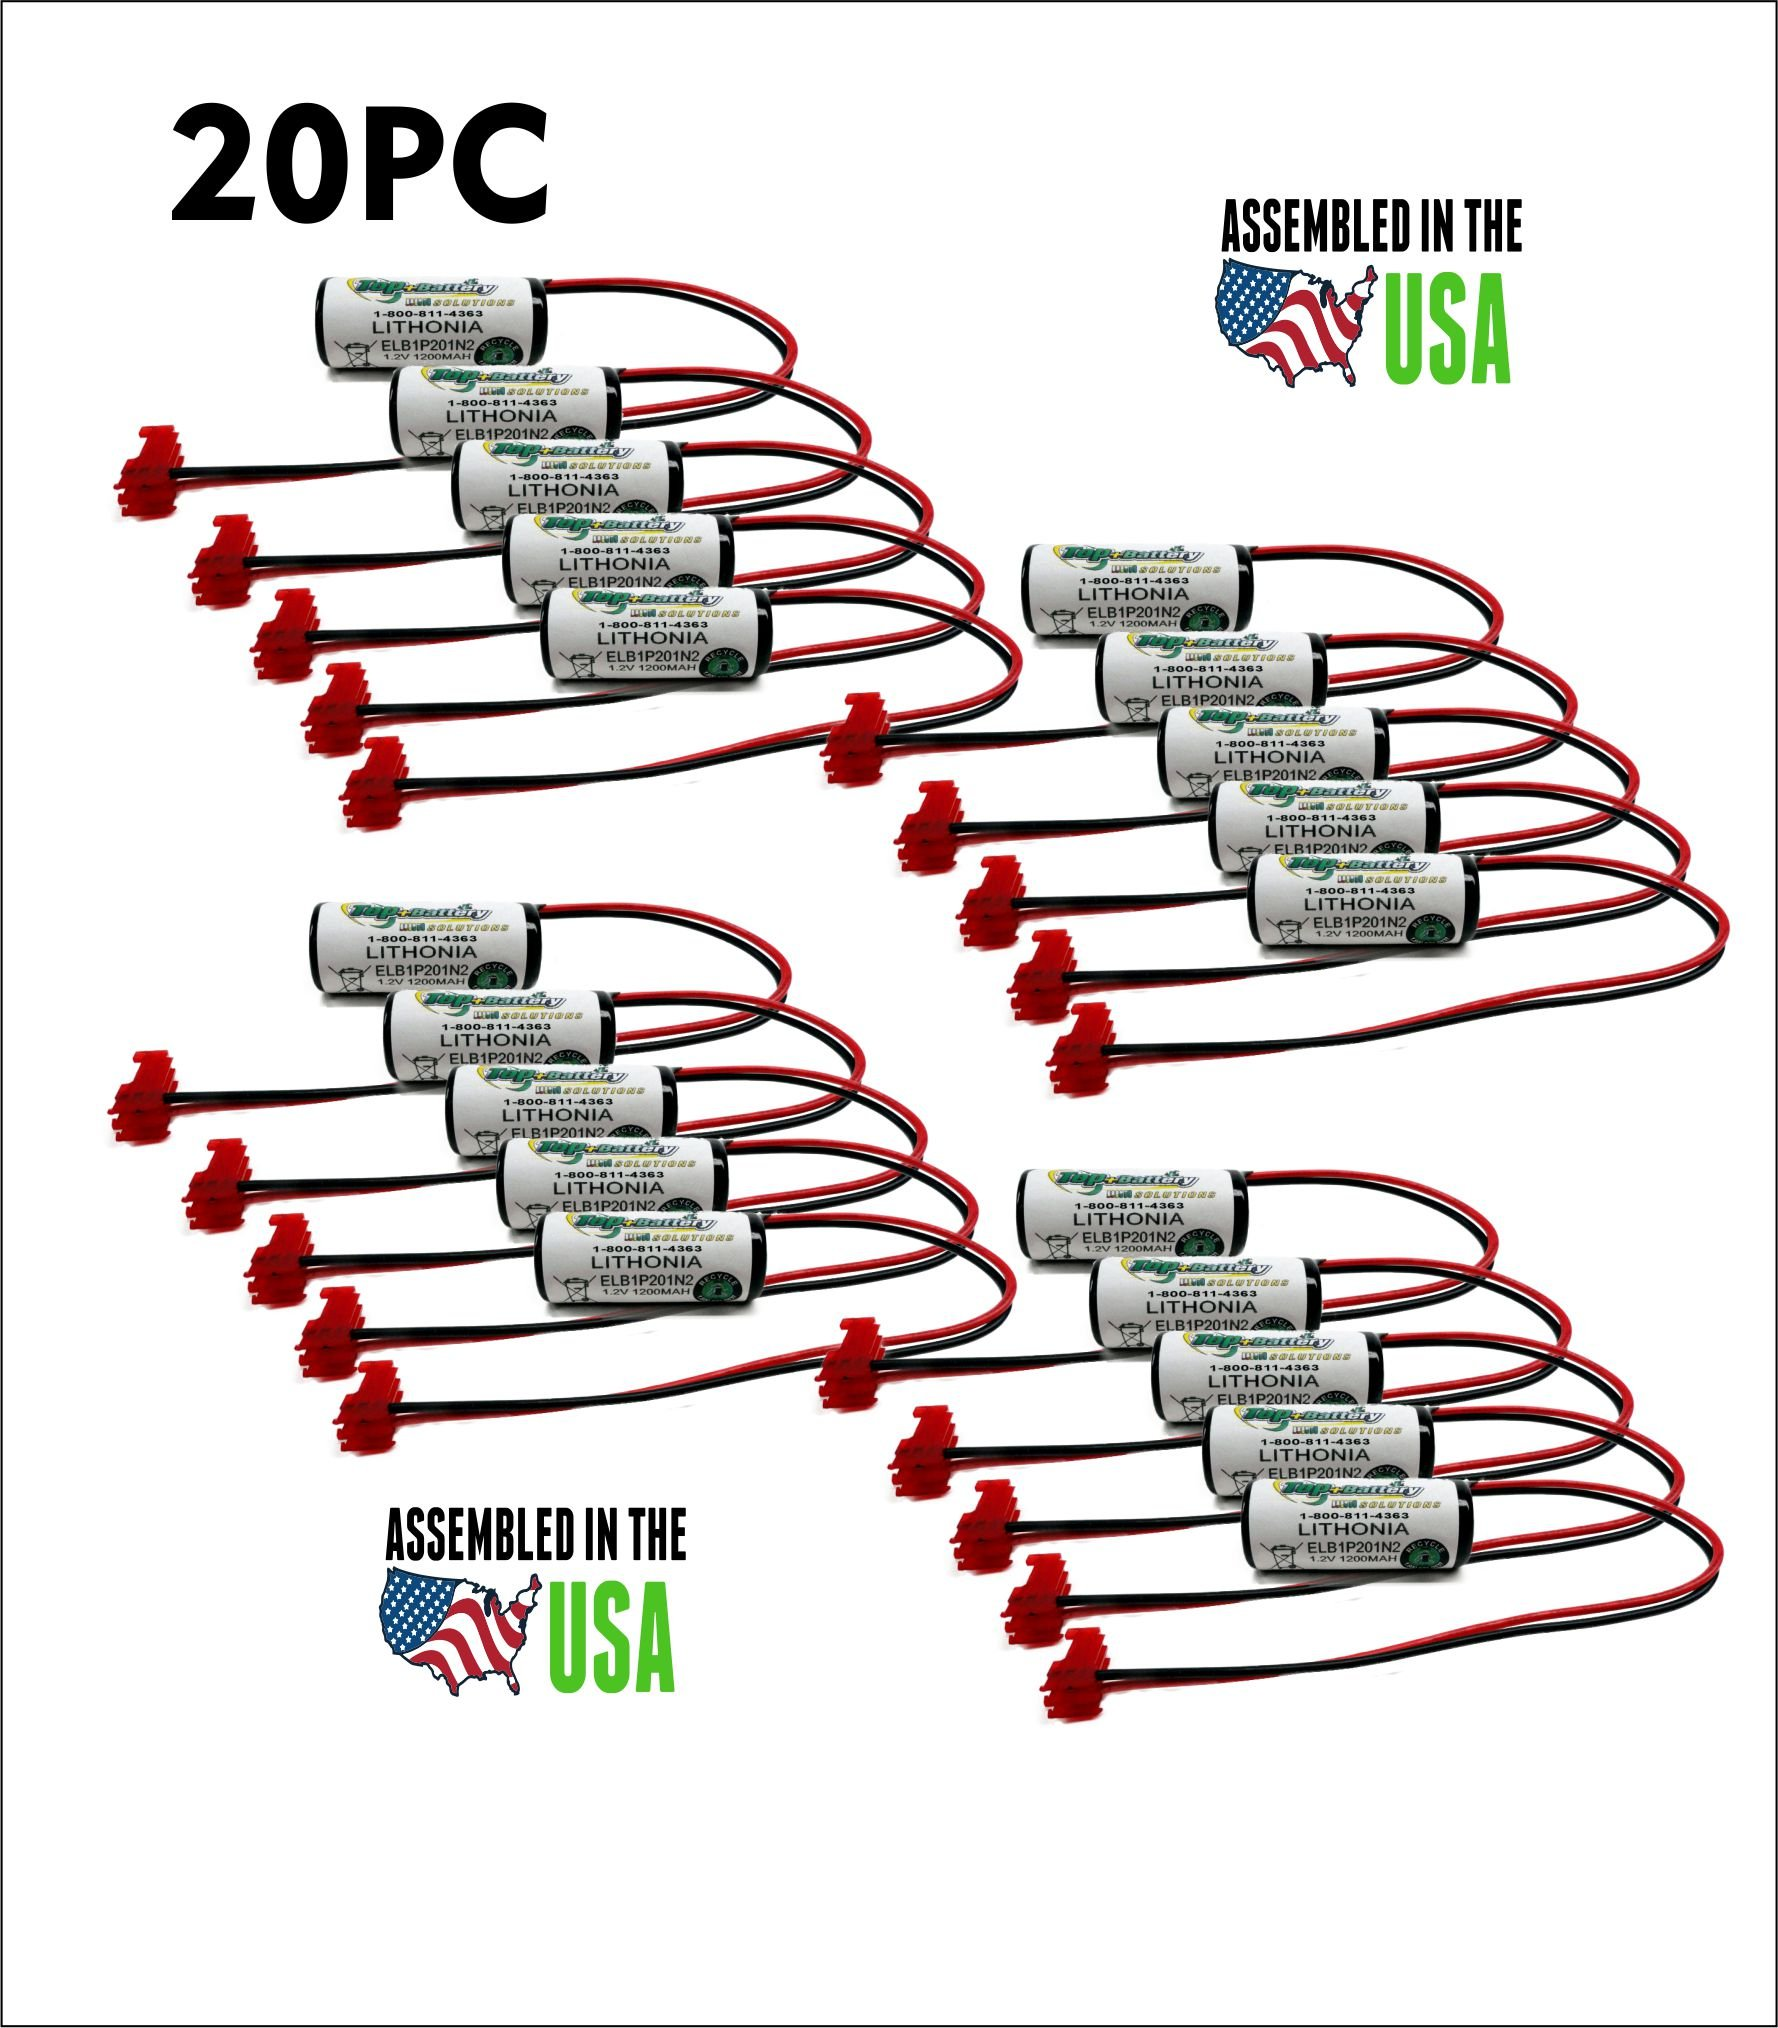 20pc Lithonia Emergency Lighting Battery for Model ELB1P201N, ELB1P201N2 by TOP BATTERY SOLUTIONS (Image #1)